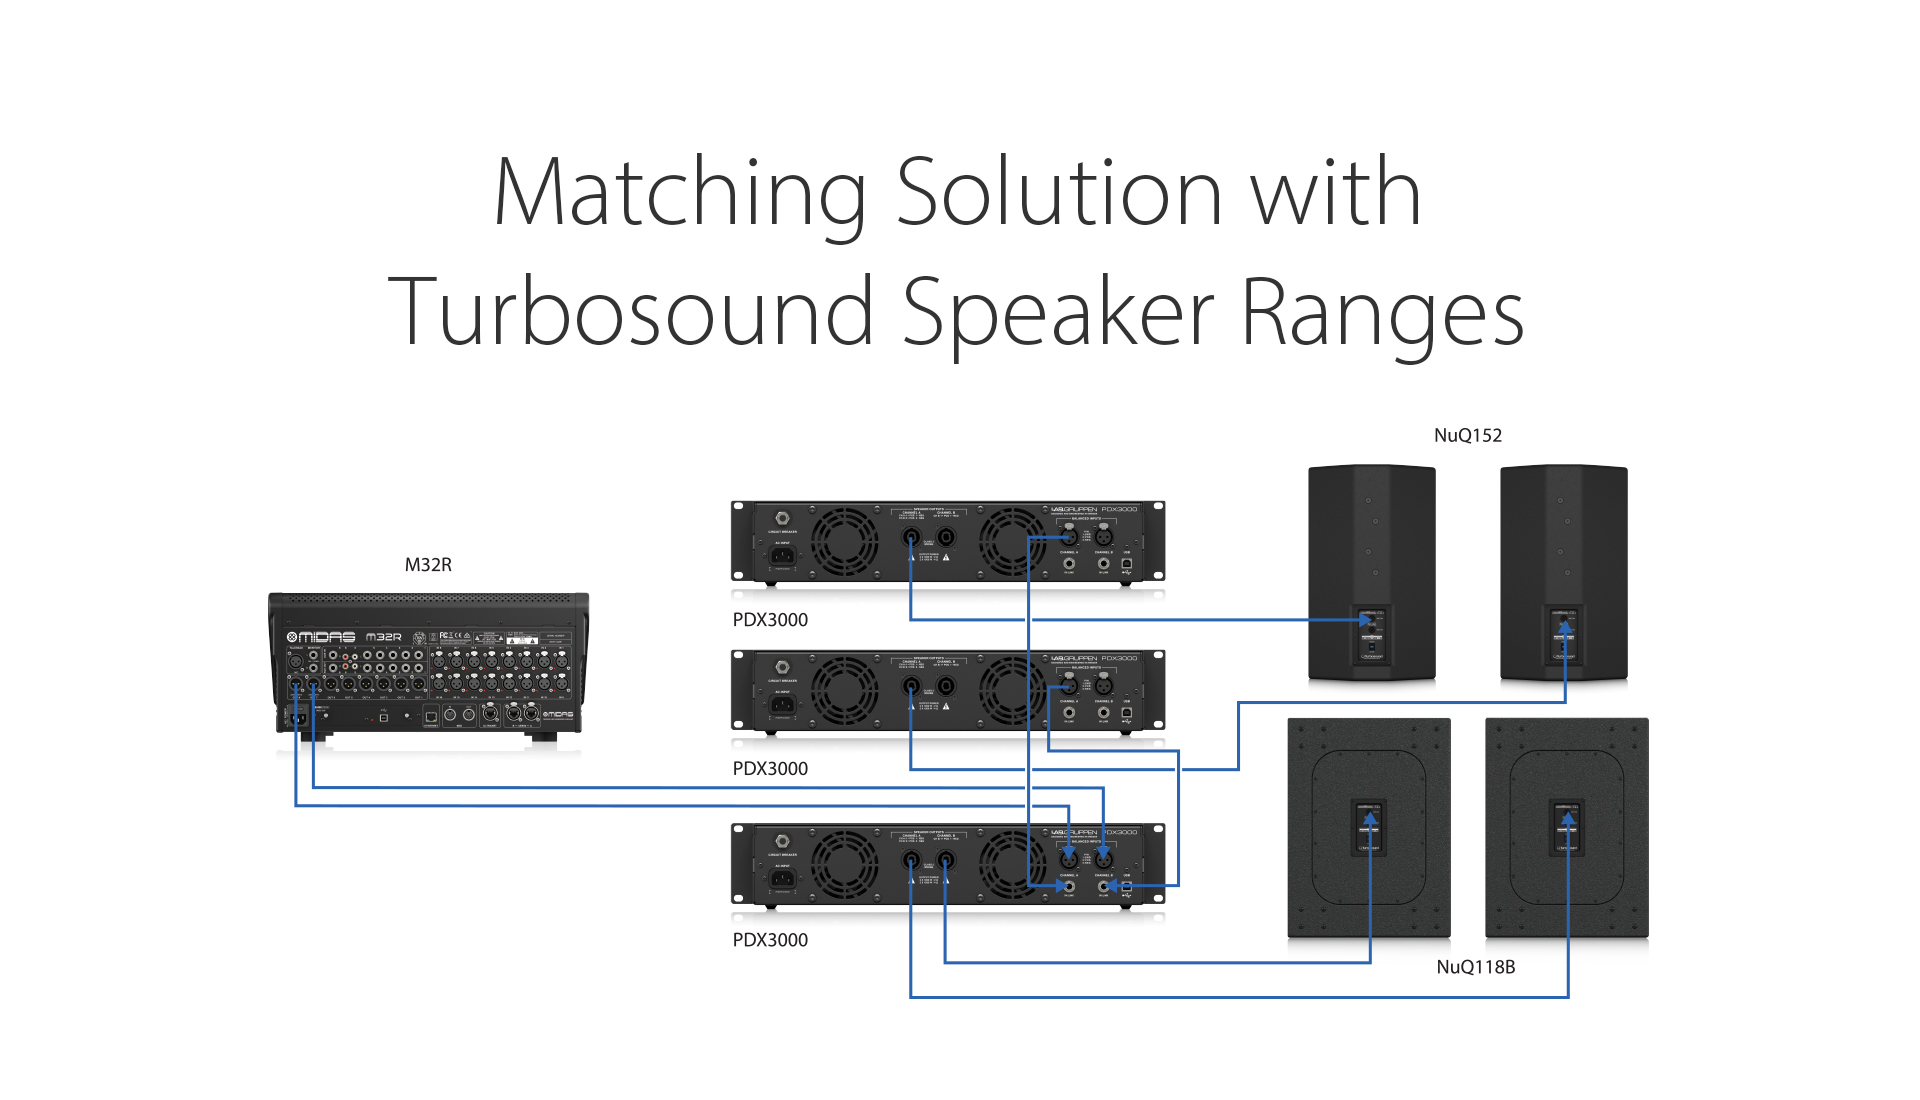 Matching Solution with Turbosound Speaker Ranges